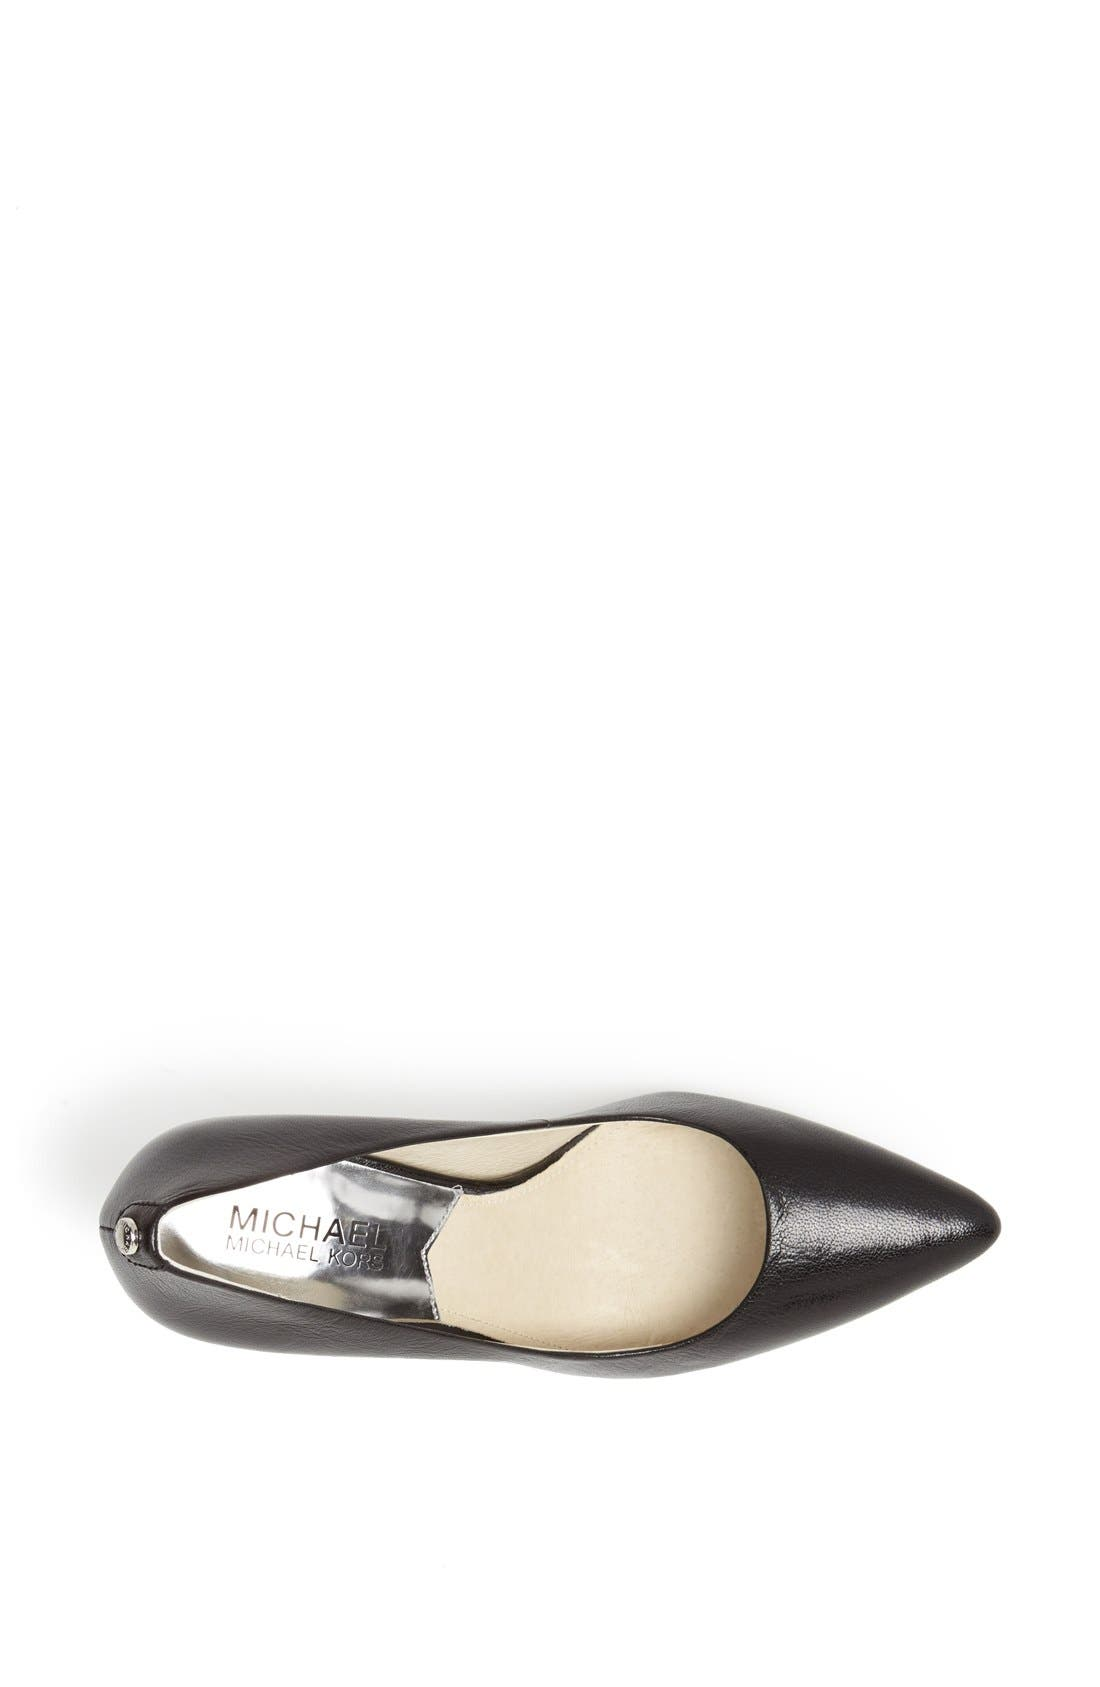 Alternate Image 3  - MICHAEL Michael Kors 'Flex' Pump (Women)